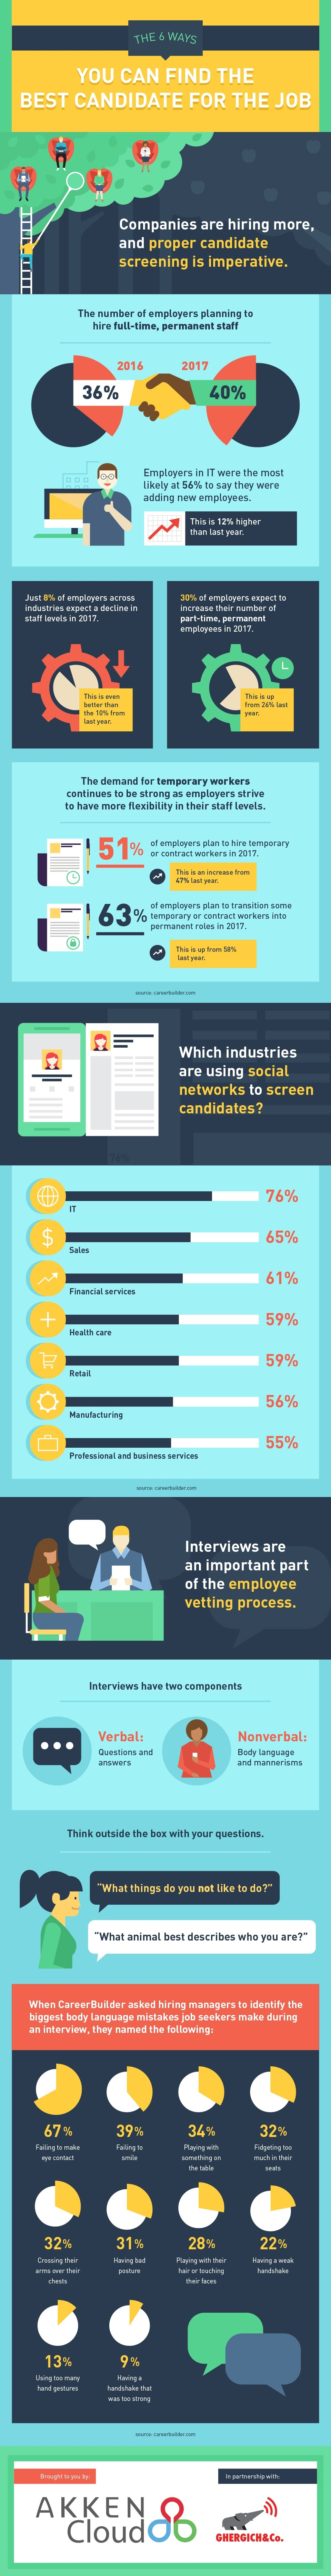 The 6 Ways You Can Find the Best Candidate for the Job - #infographic